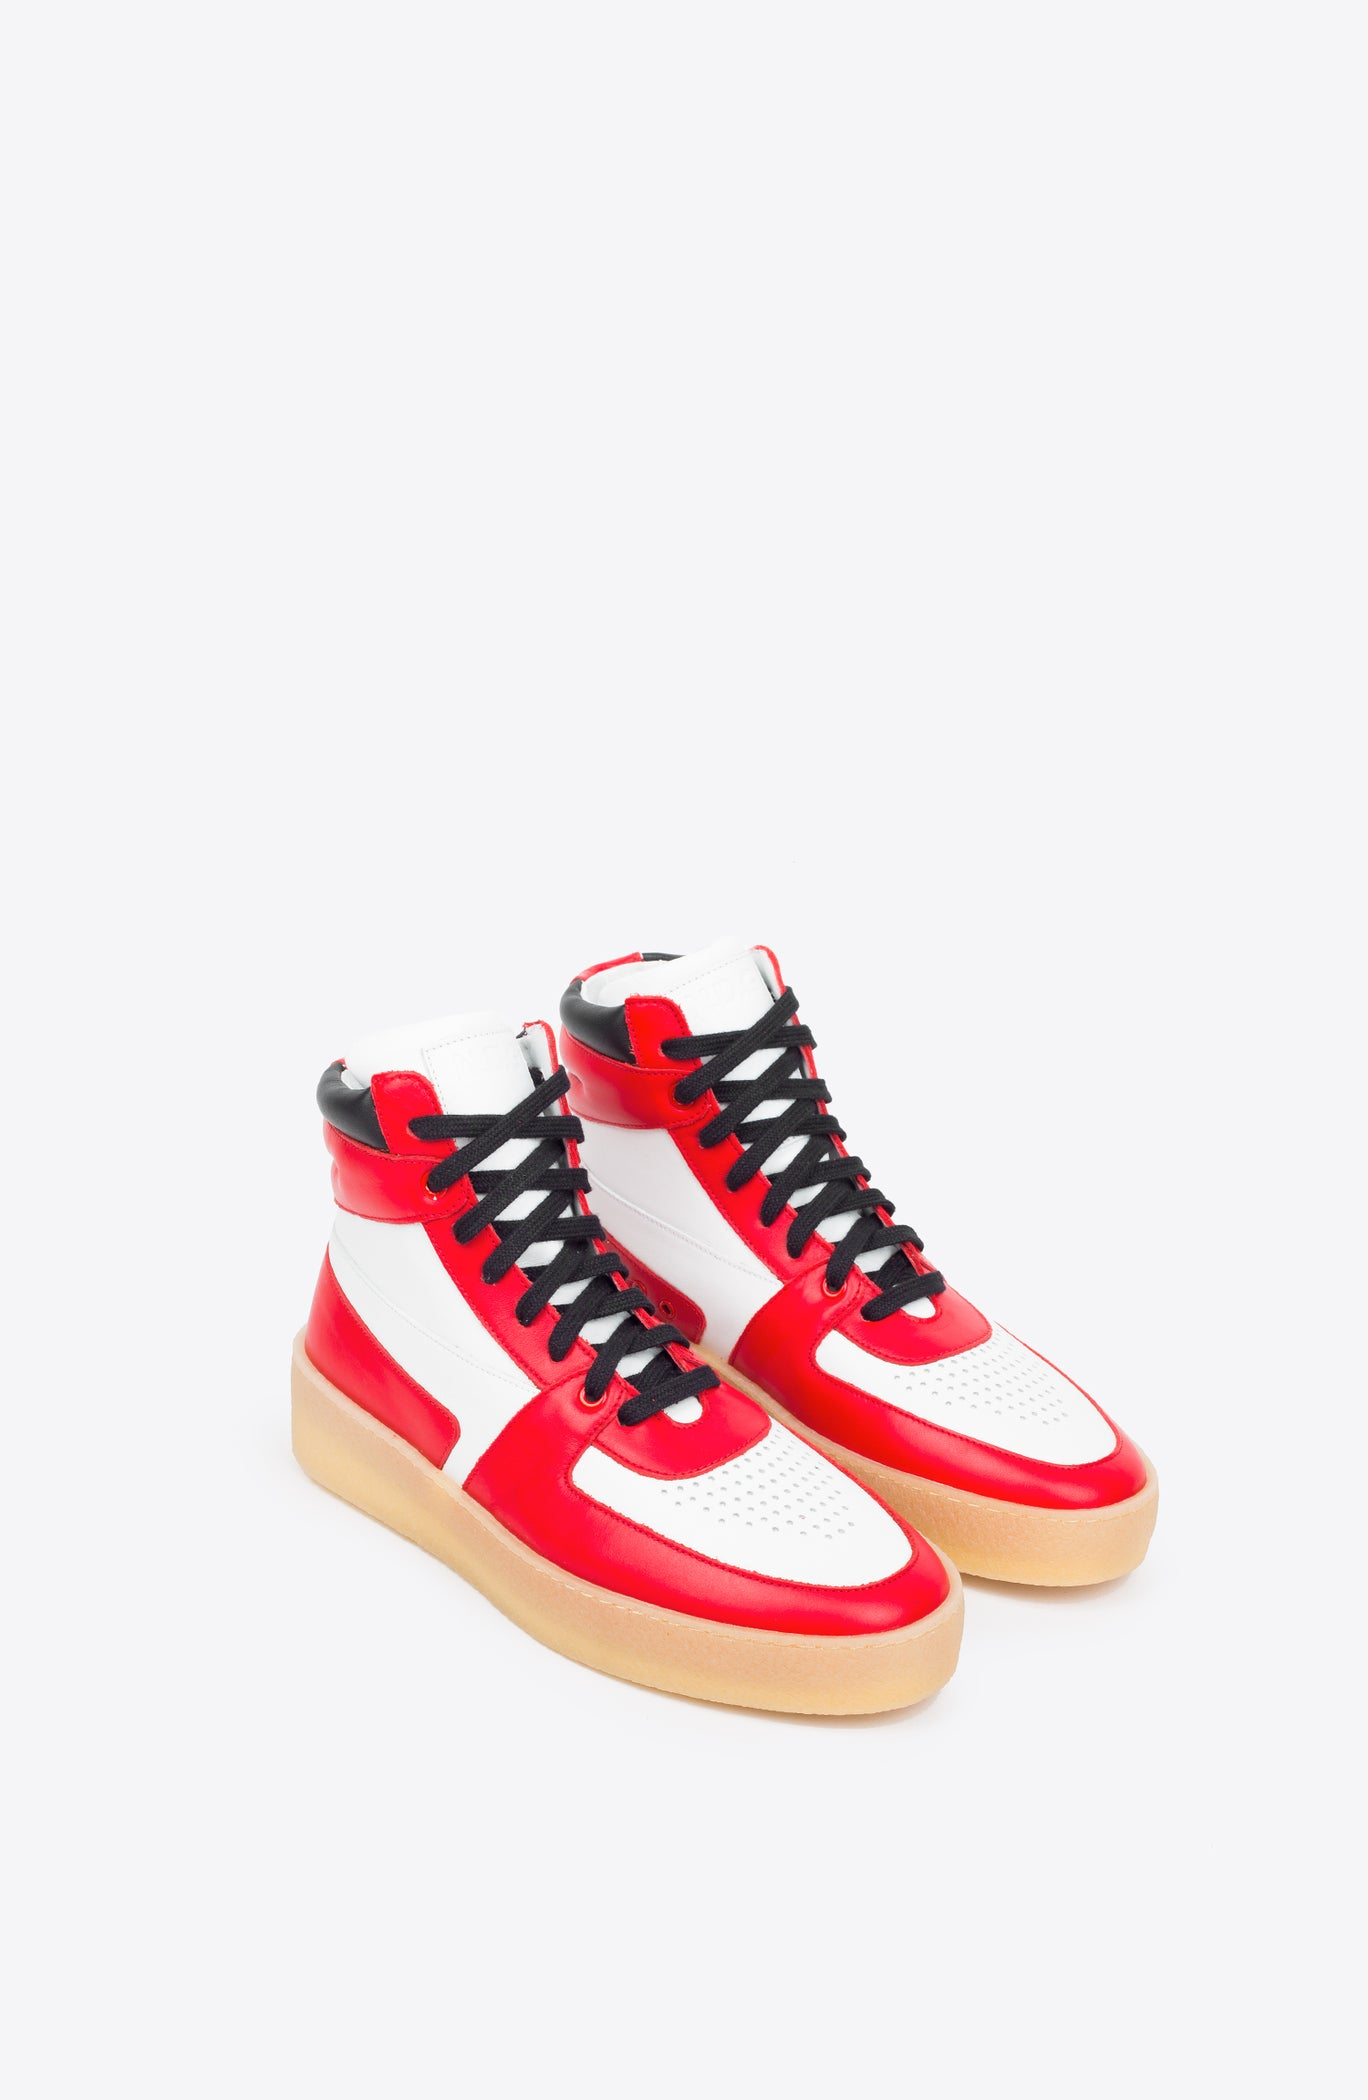 GUM SOLE AWAY RED 1984 SNEAKER